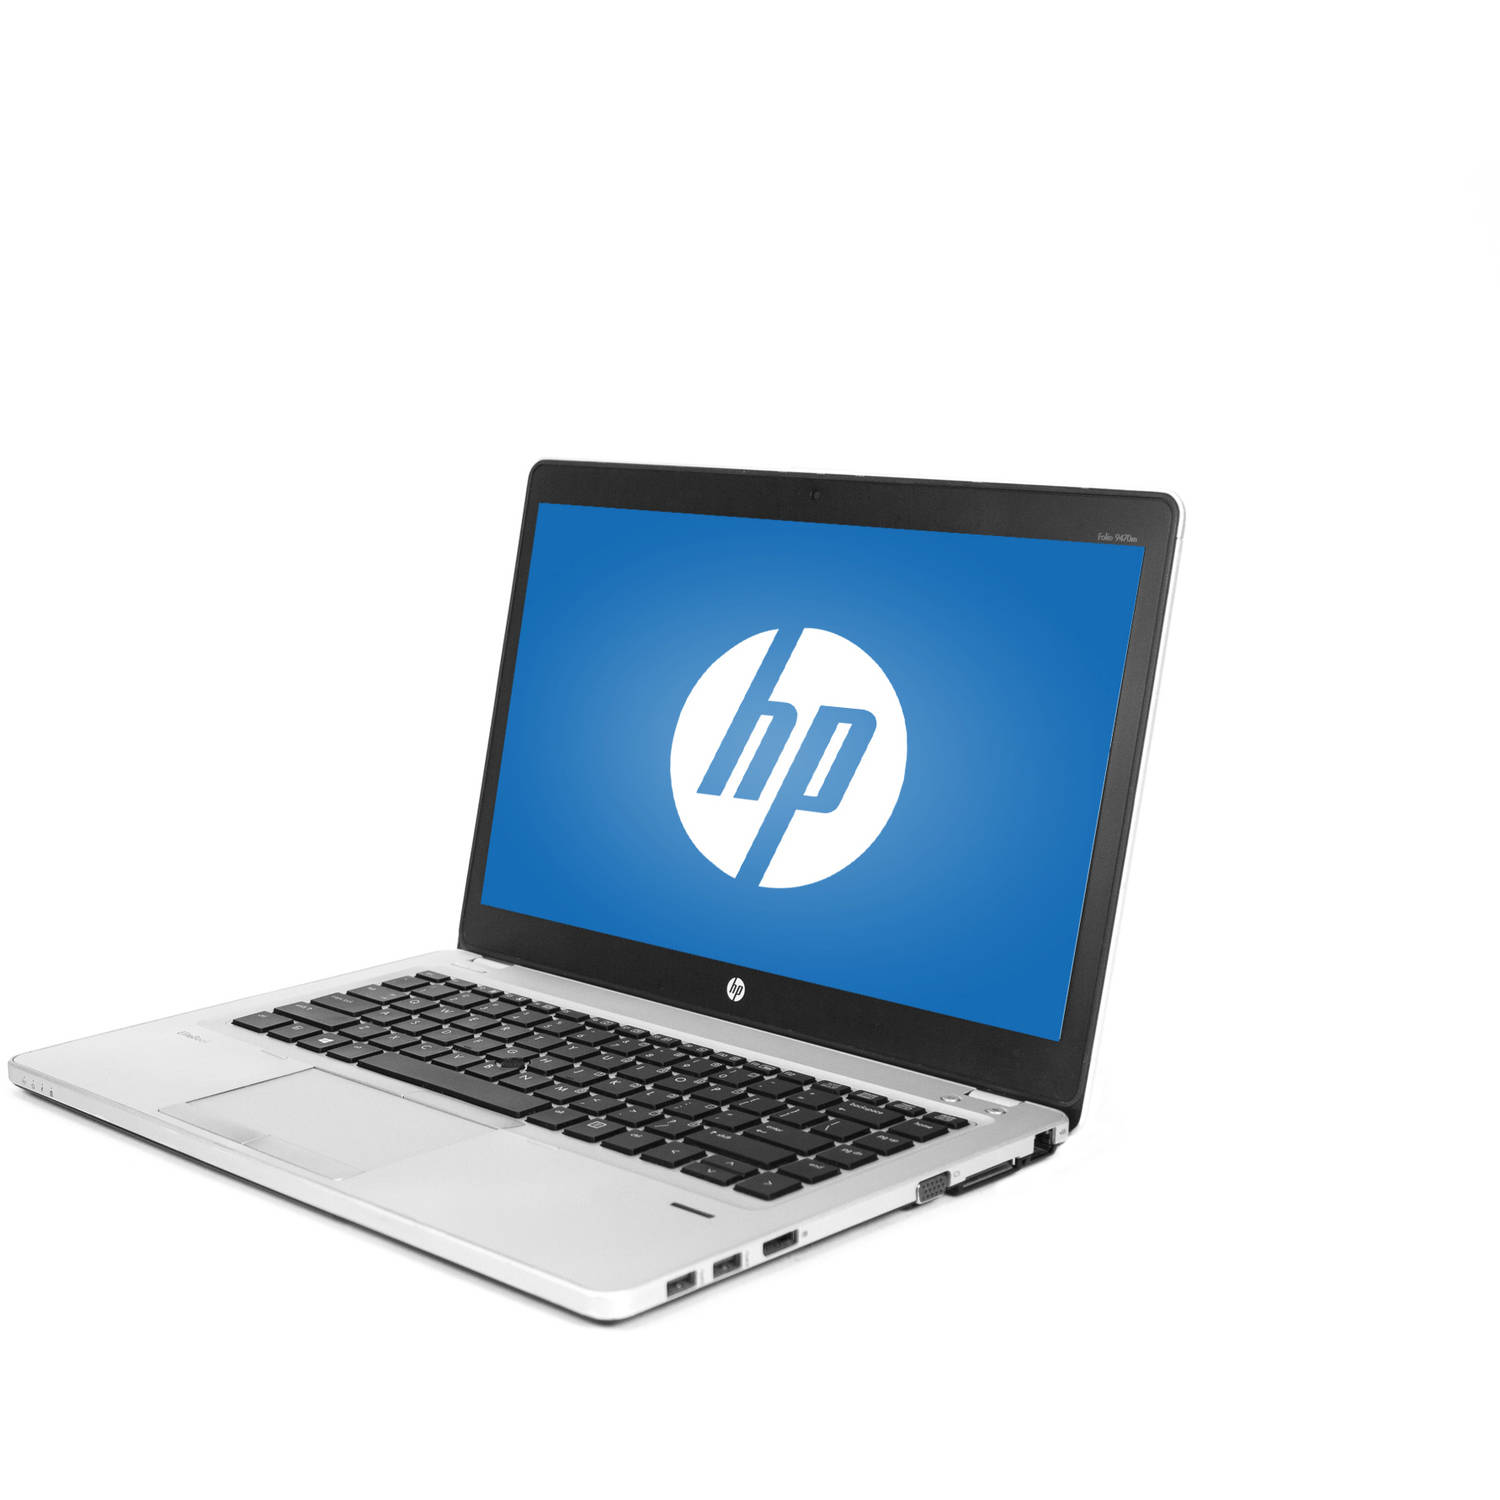 Refurbished HP Ultrabook 14 EliteBook Folio 9470M WA5 - 0890 Laptop PC with Intel Core i5 - 3427U Processor, 16GB Memory, 750GB Hard Drive and Windows 10 Pro